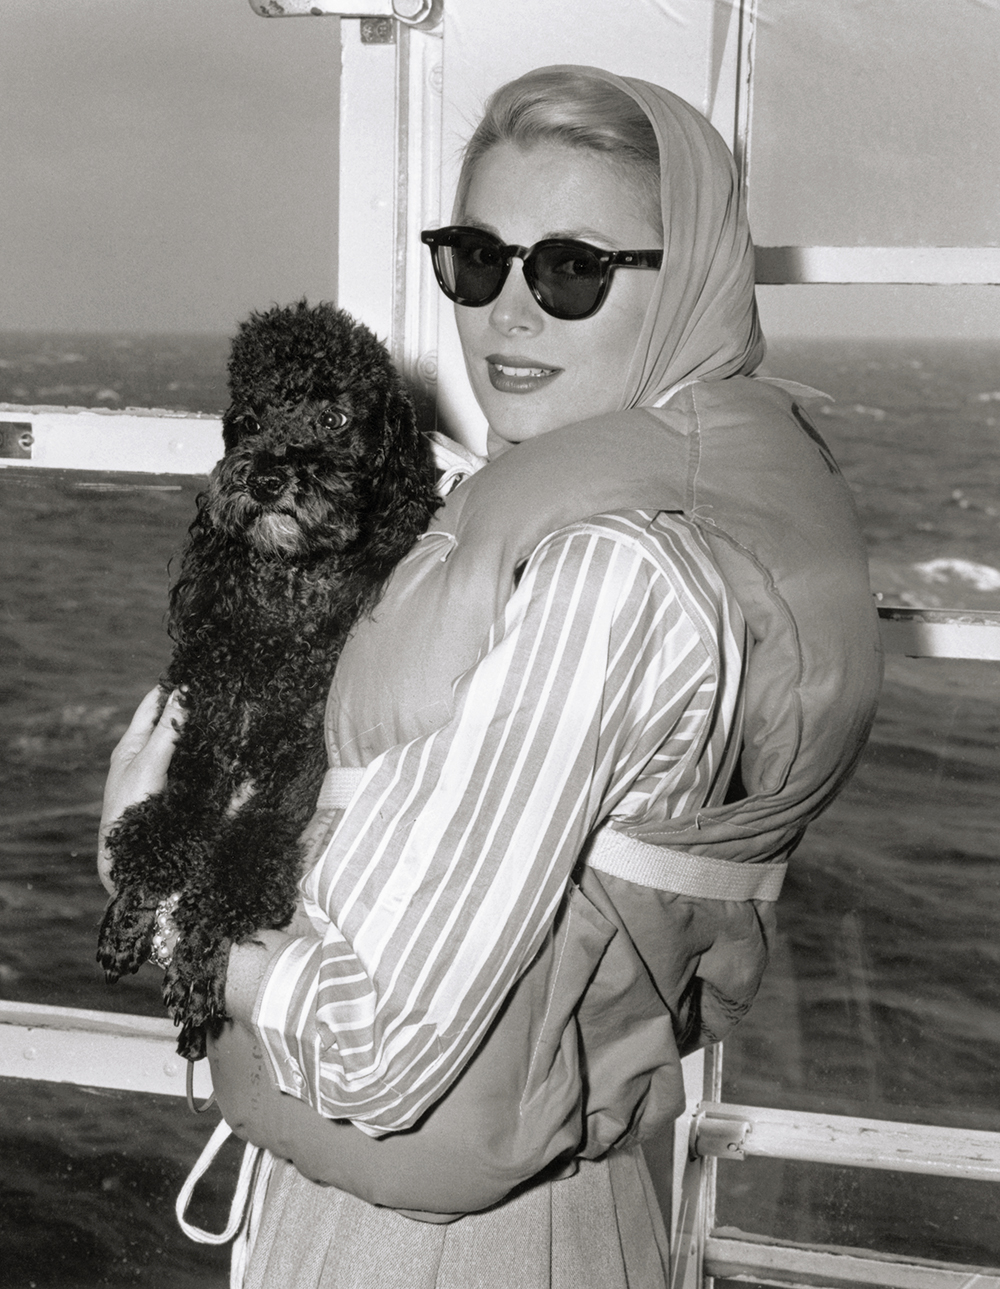 Grace Kelly onboard the SS Constitution bound for Monaco.